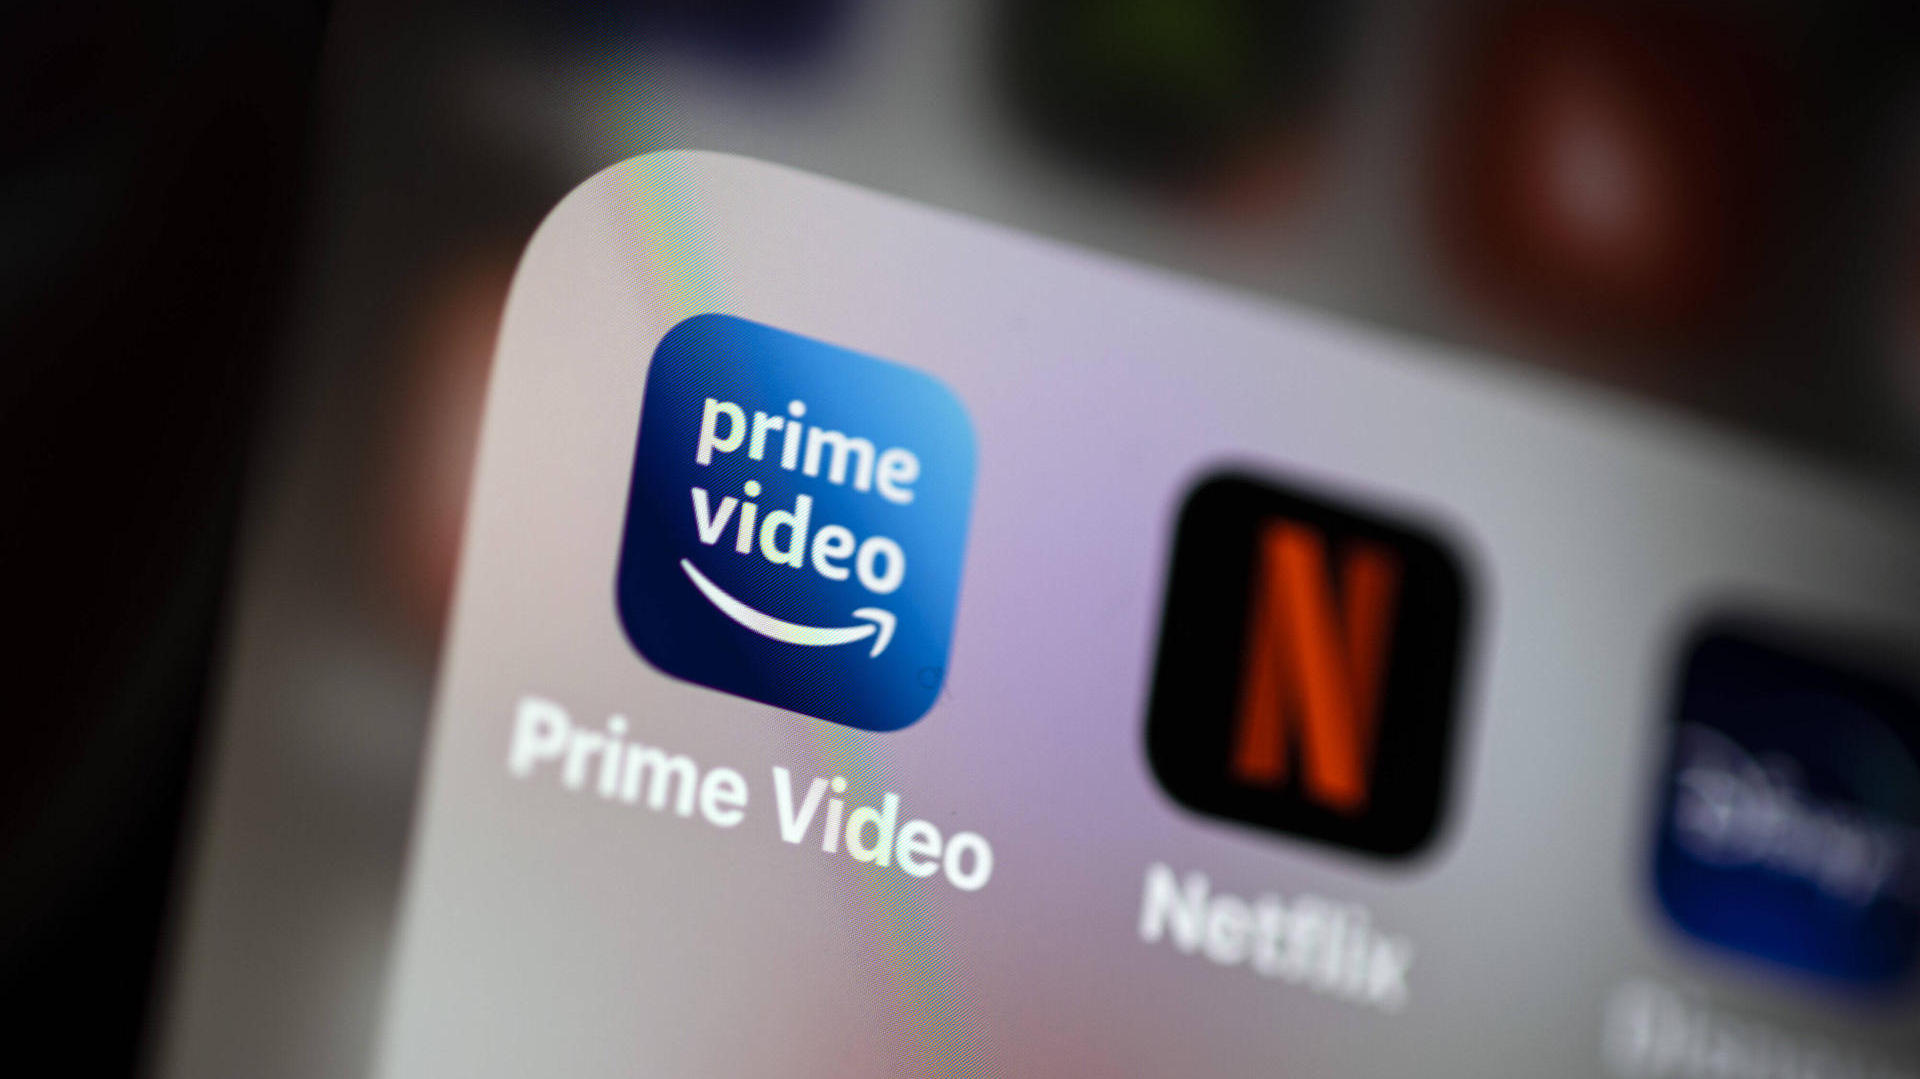 Amazon Prime Video orientiert sich an Netflix